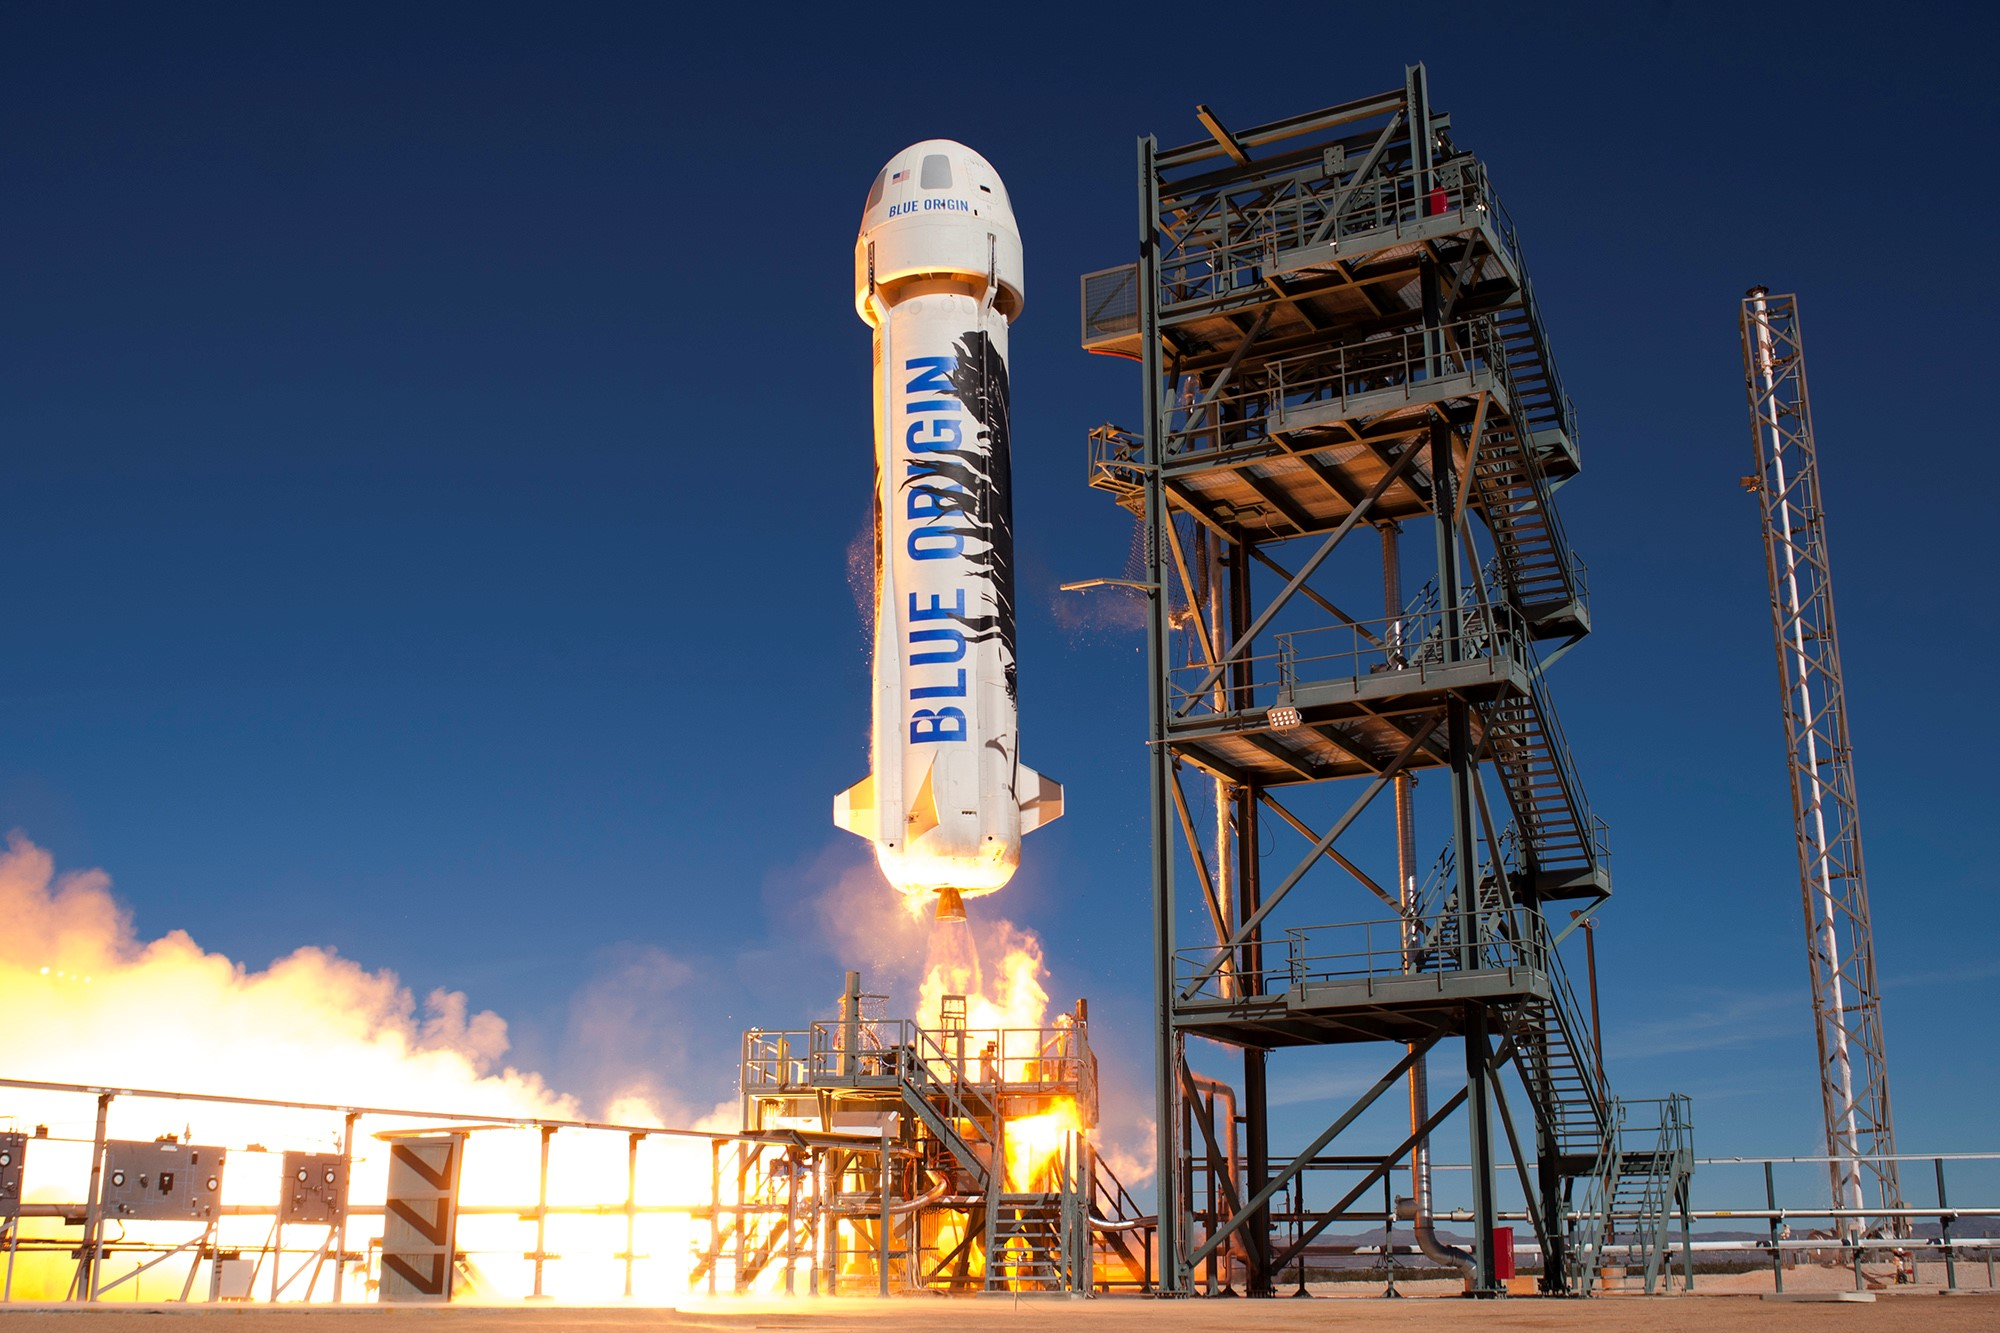 Blue Origin's New Shepard launches and lands a second time, making it the first truly reusable rocket.